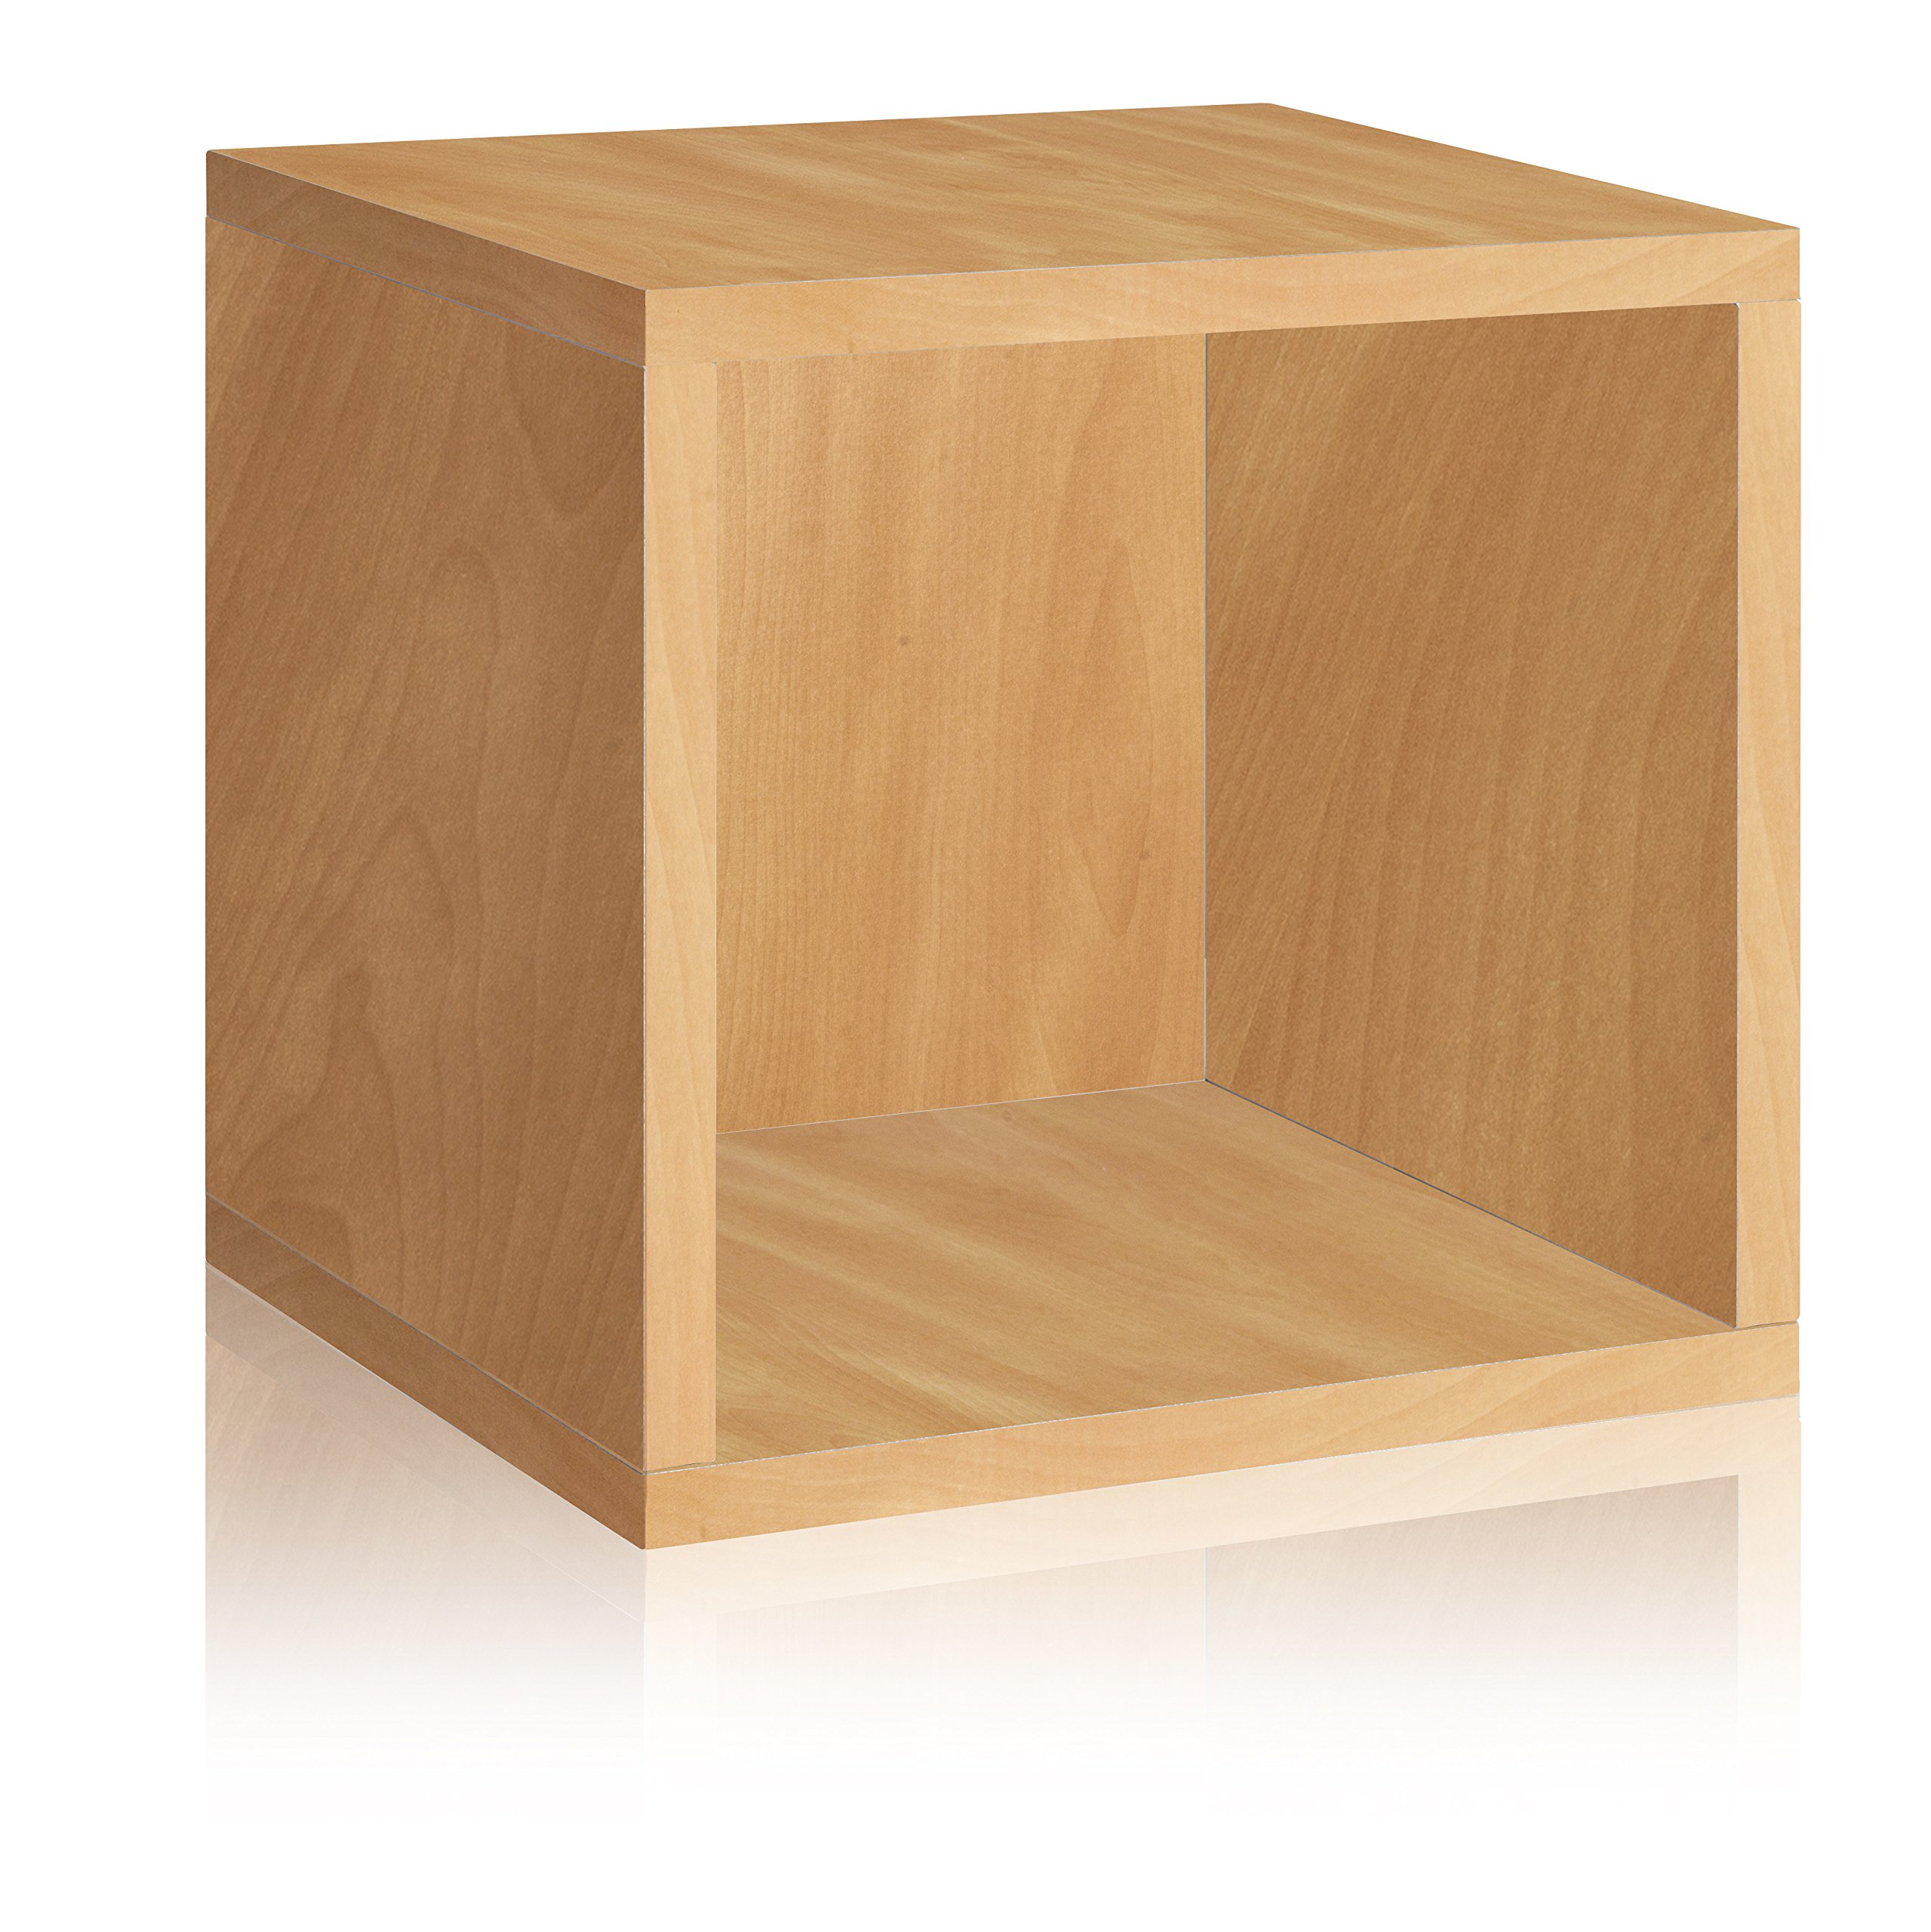 Way Basics Eco Stackable Storage Cube and Cubby Organizer, Natural (made from sustainable non-toxic zBoard paperboard)